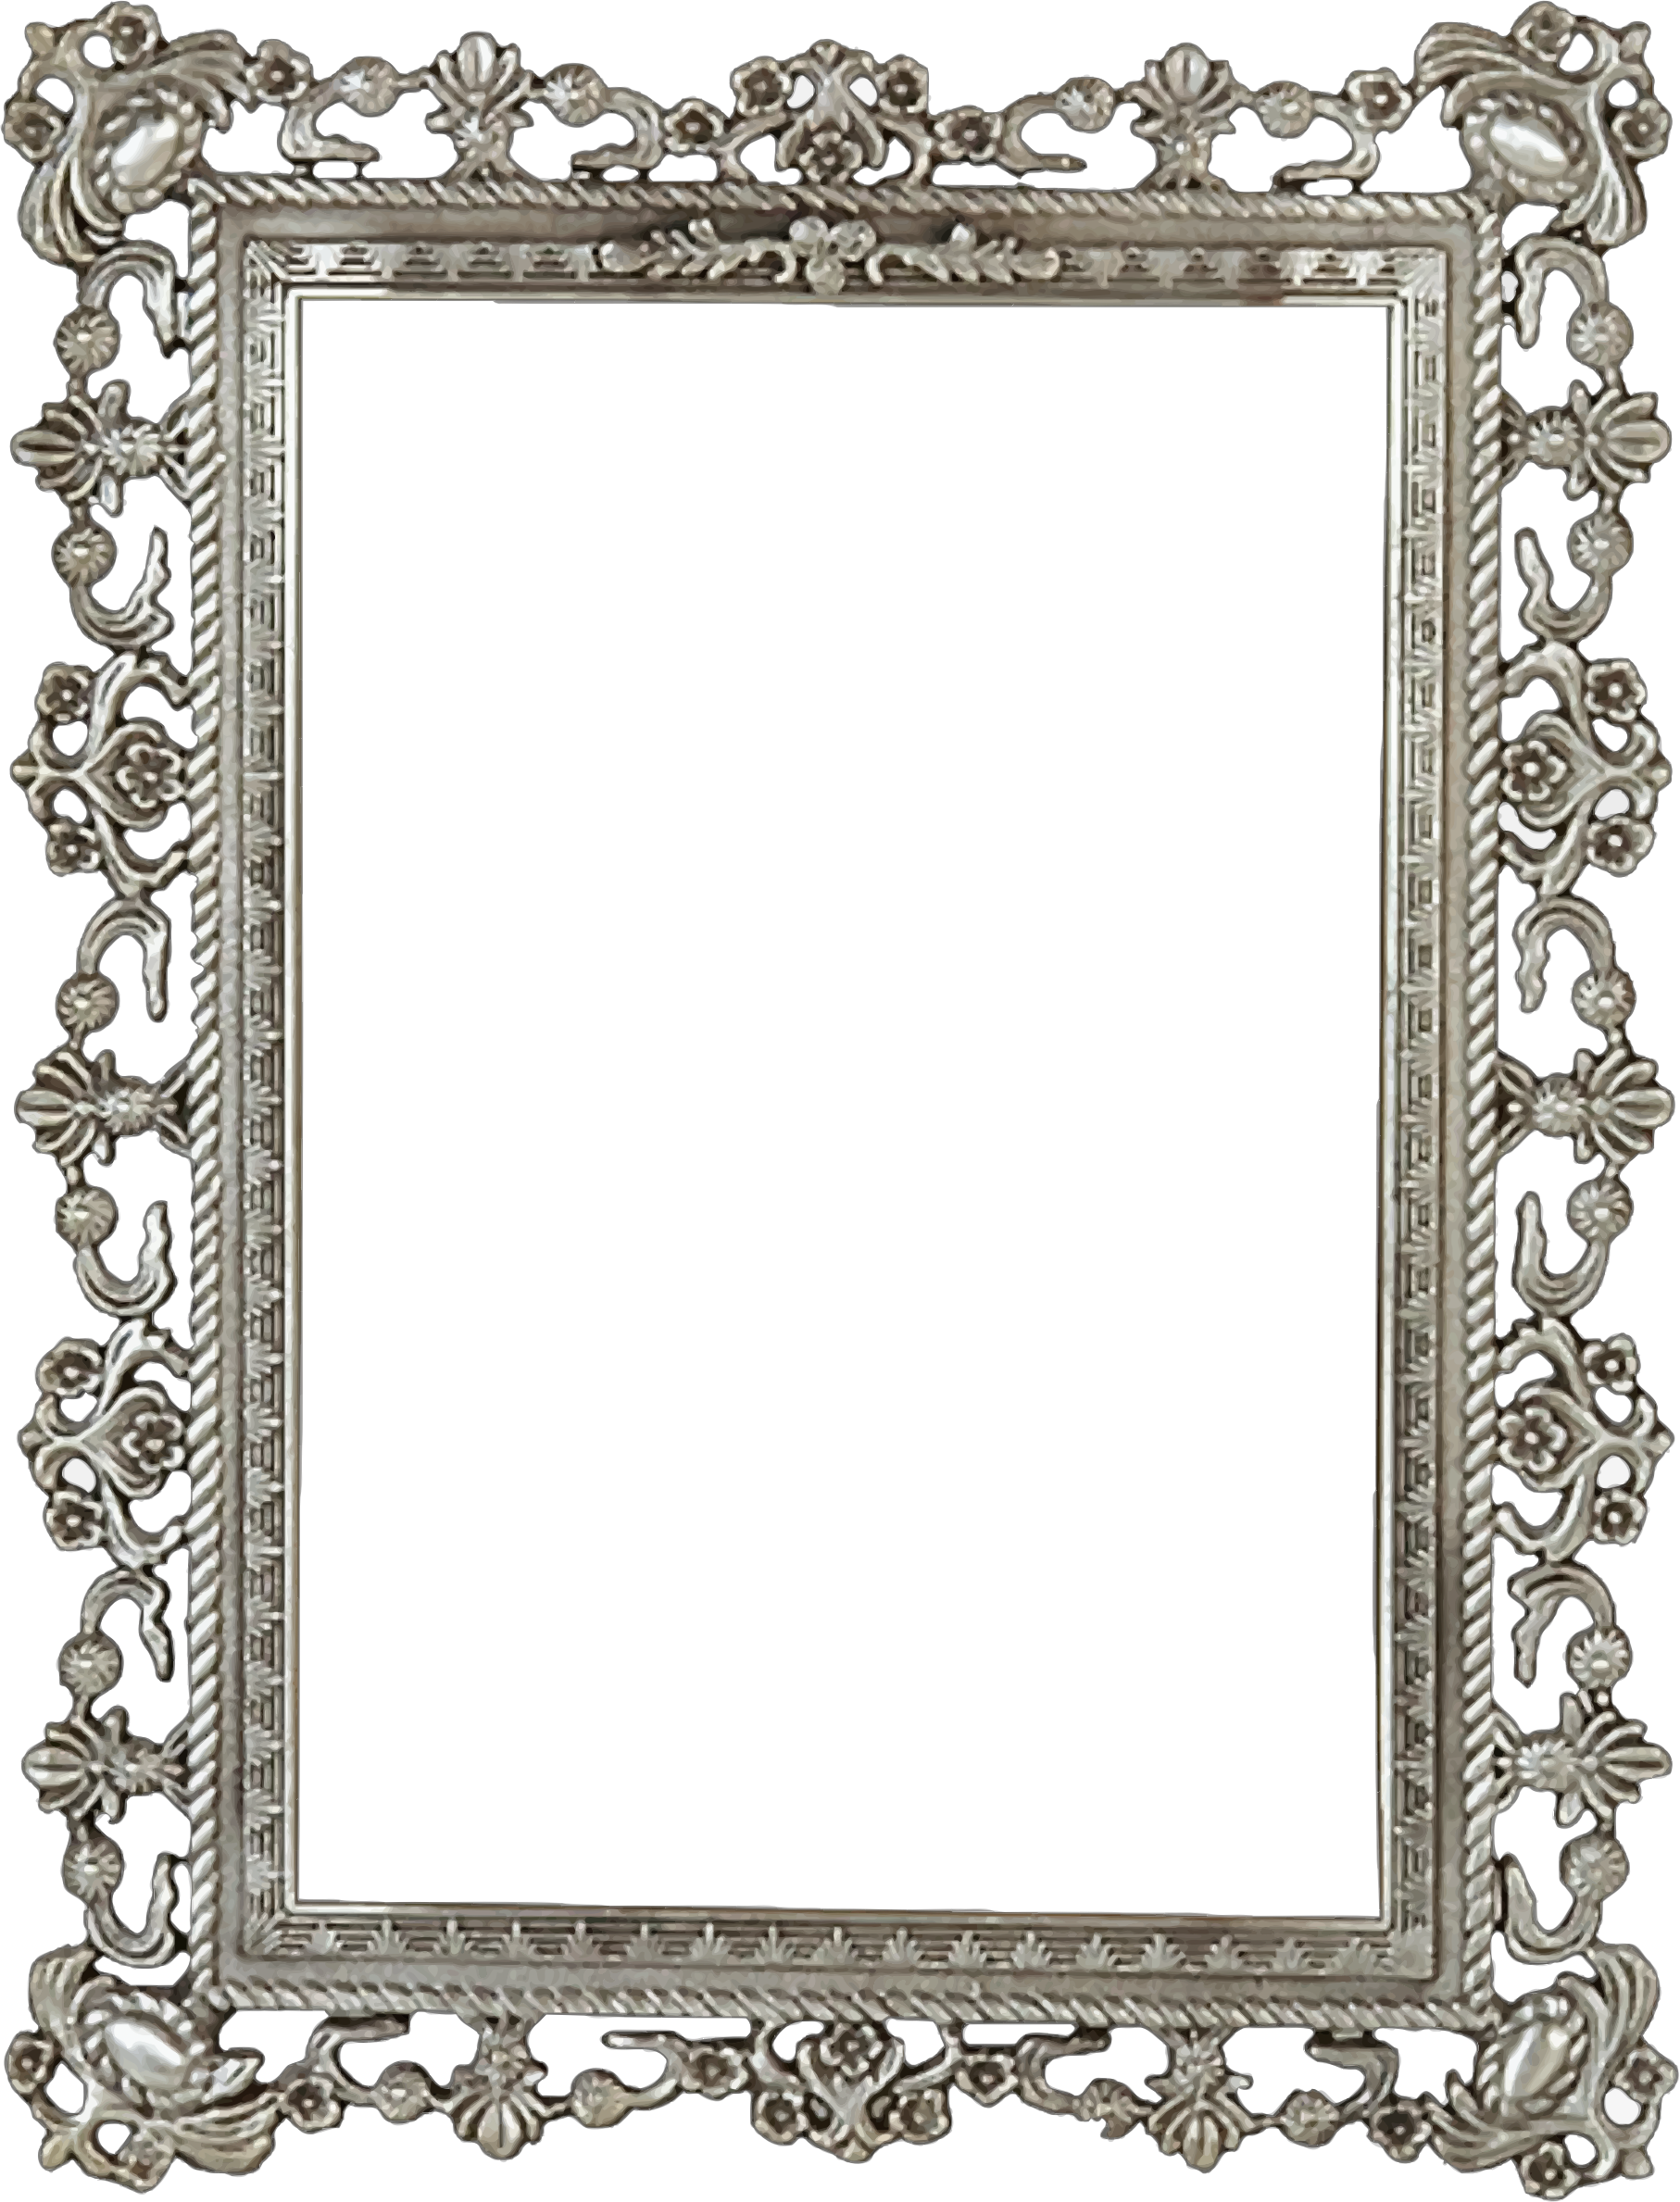 Ornate frame 41 by Firkin